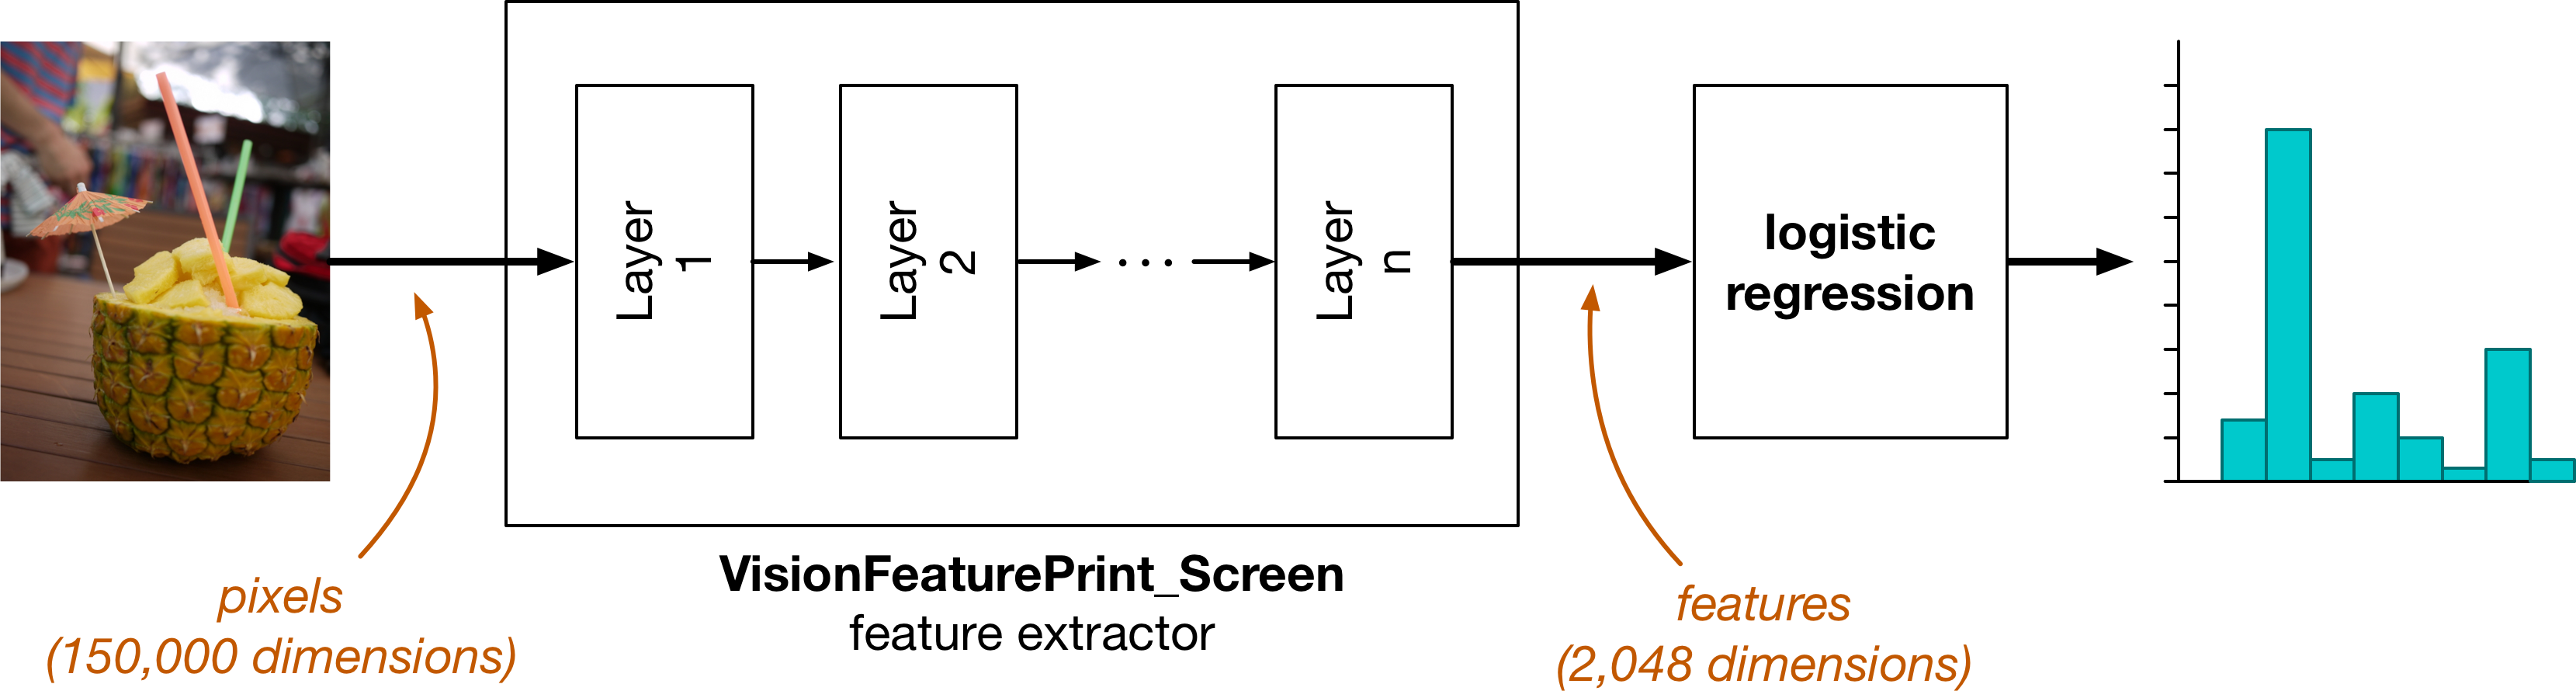 VisionFeaturePrint_Screen extracts features